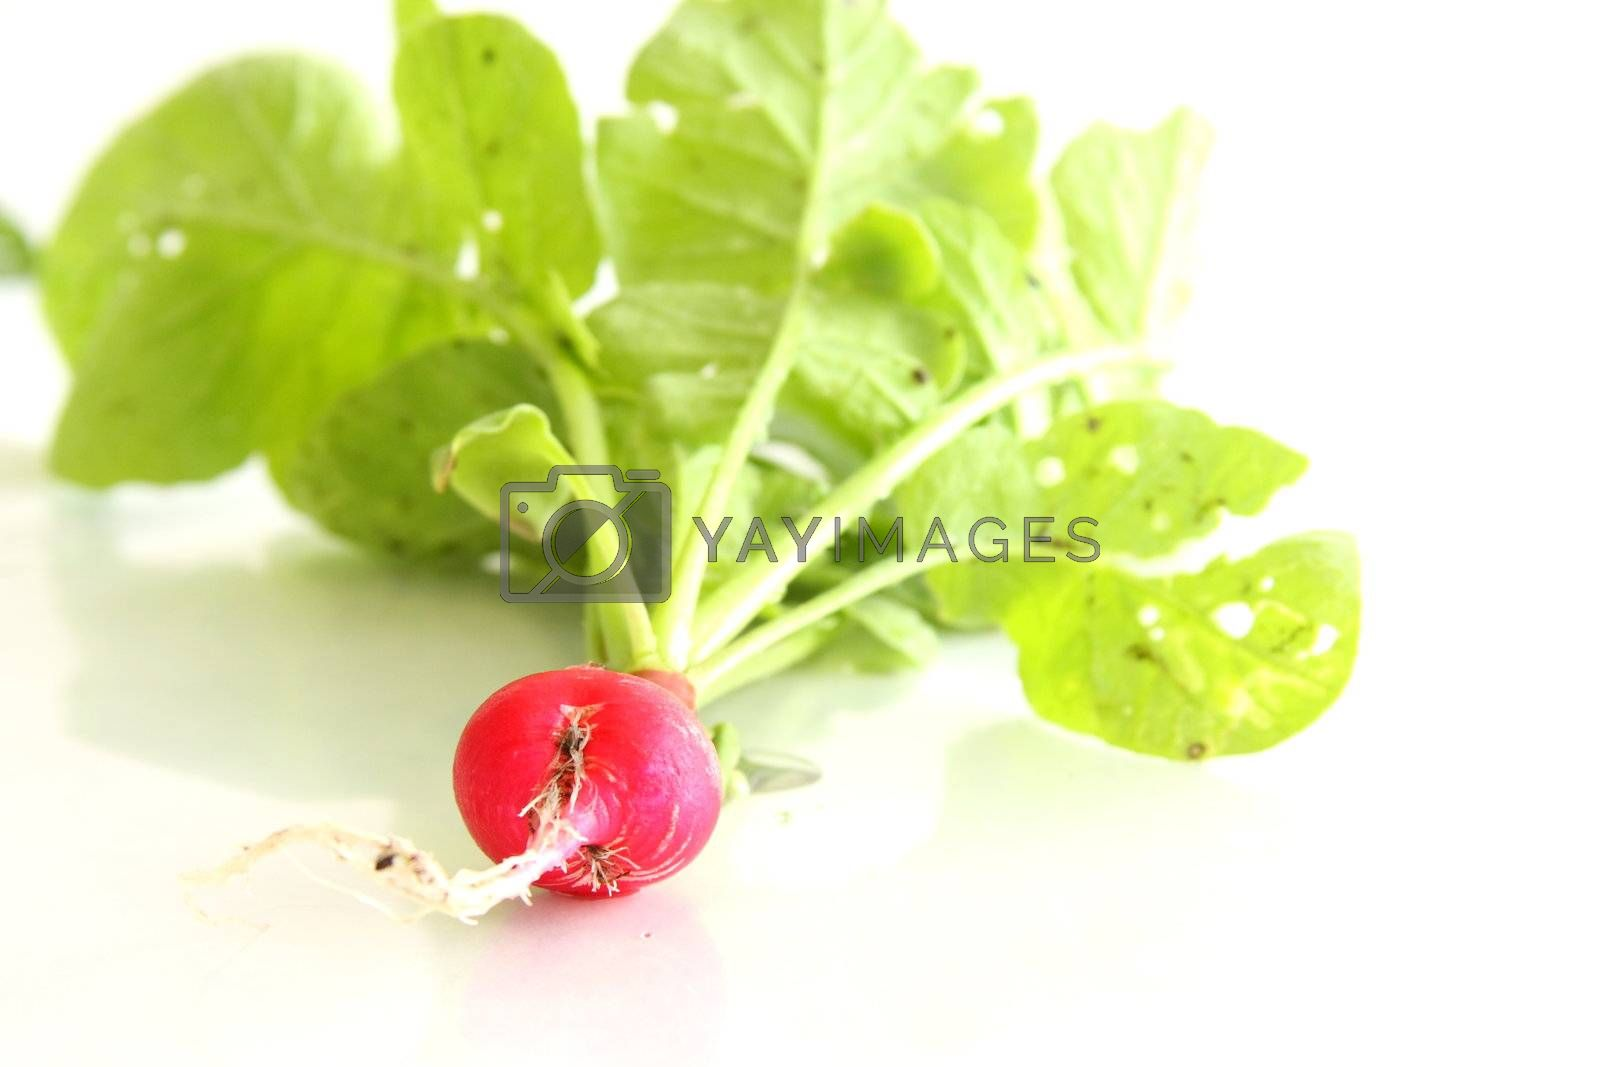 Shot of Cherry Belle Radish on white